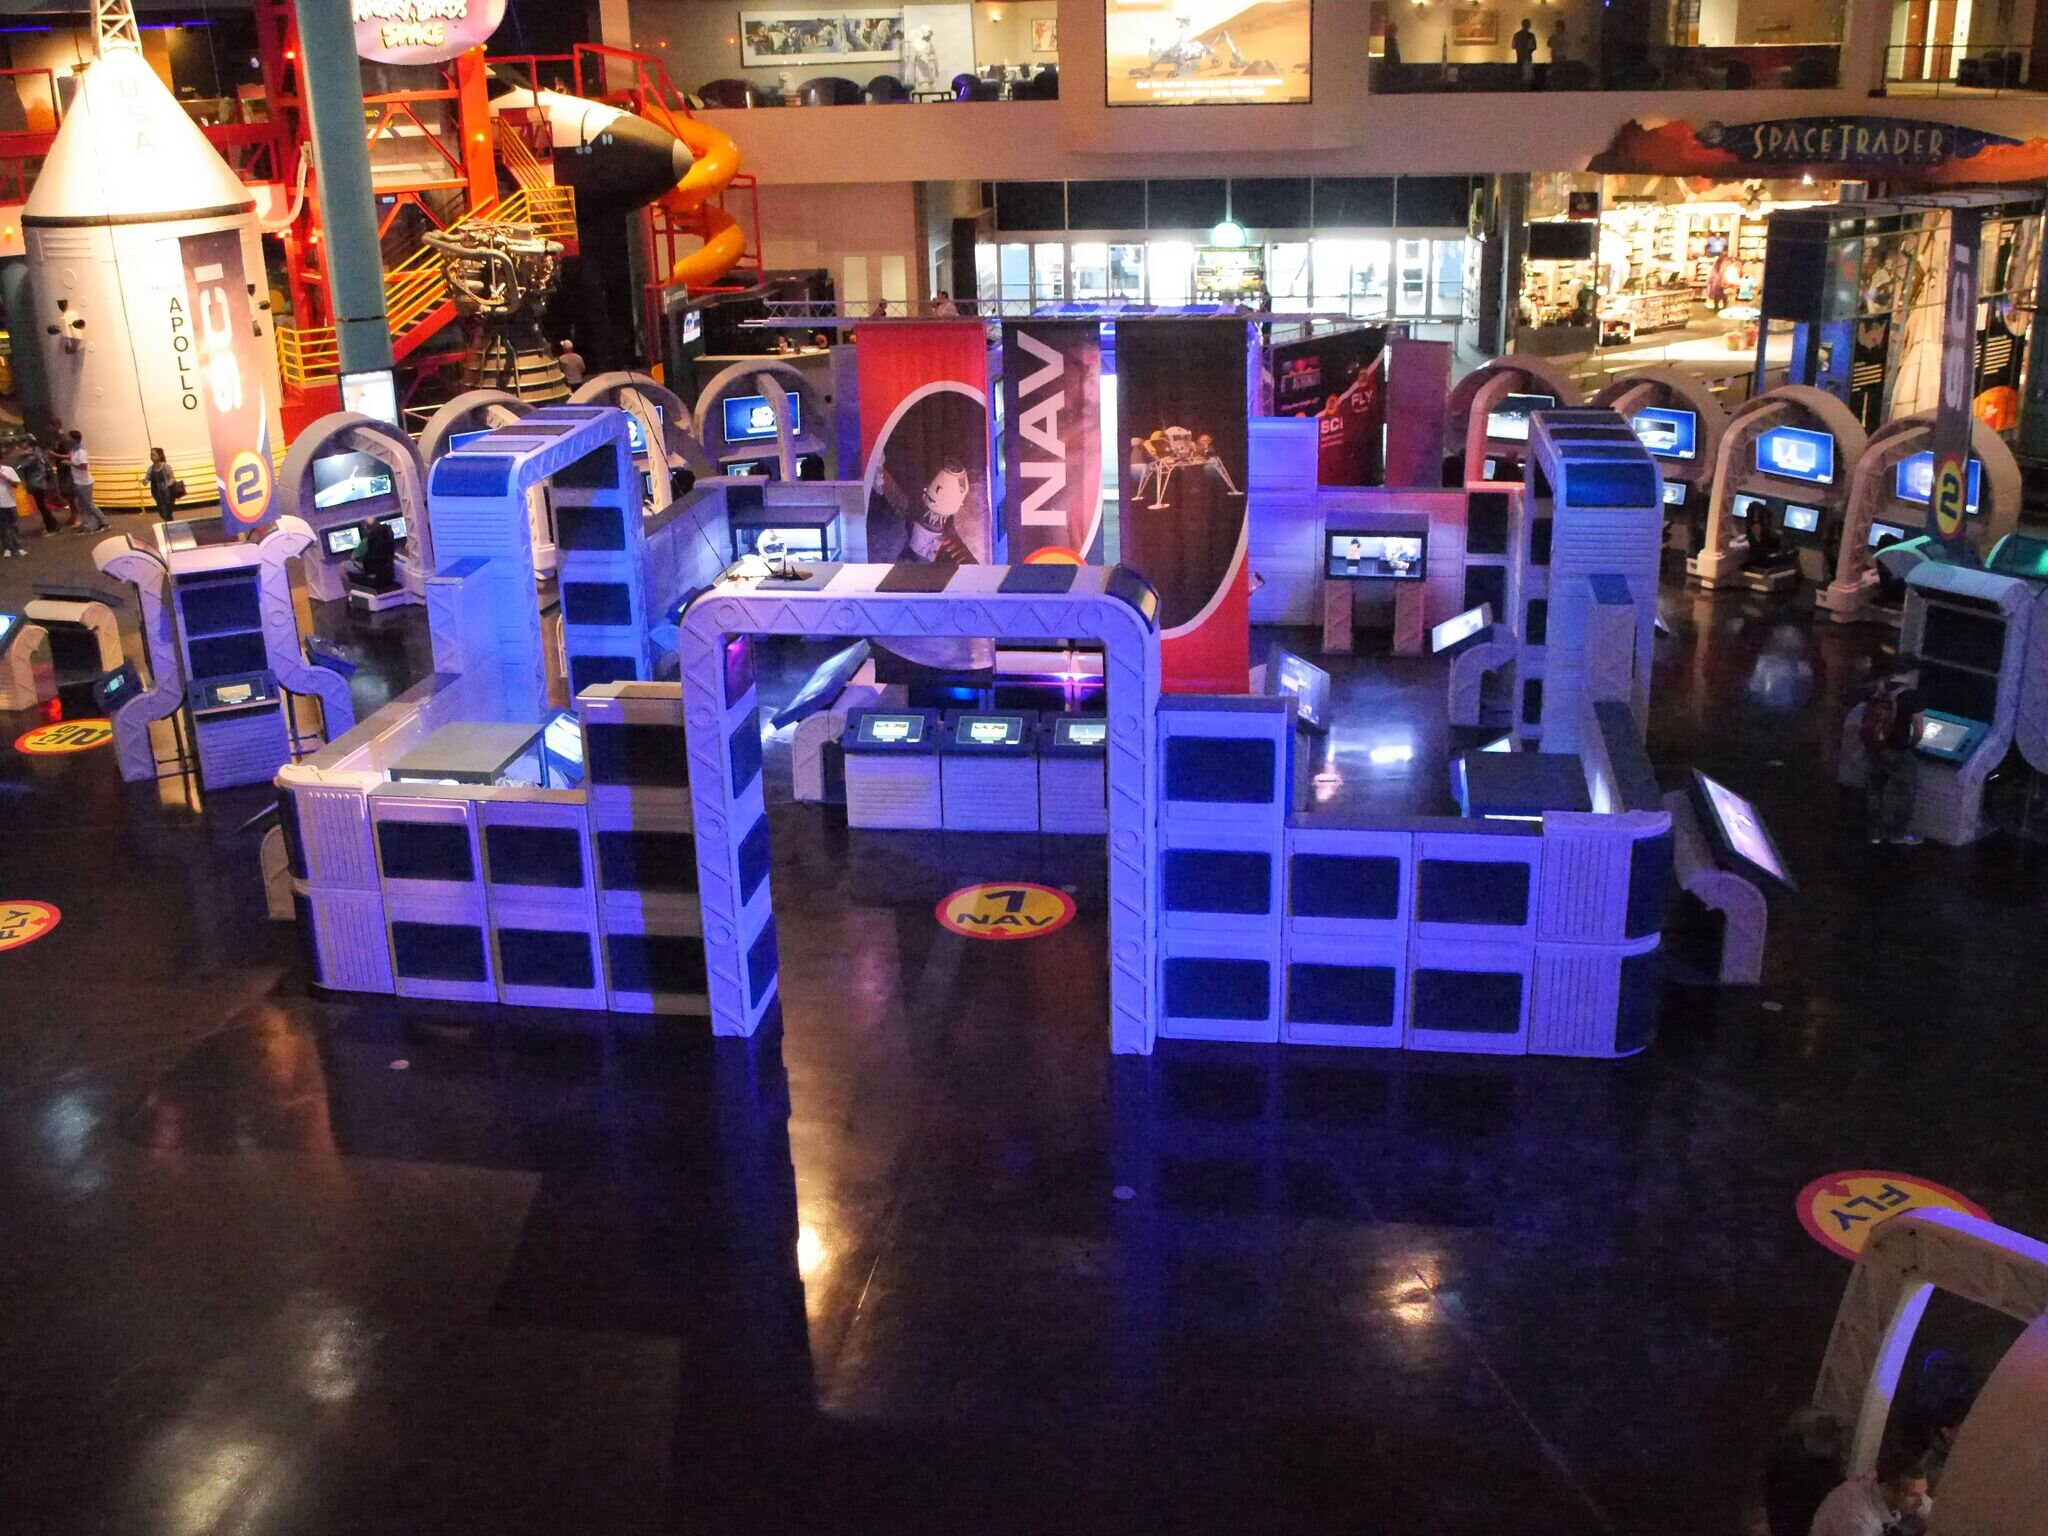 """modular exhibit design - Be the Astronaut can fit almost any exhibition space, with a combination of modular forms and three stations - NAV, SCI, & FLY. Build a myriad of adventures at any venue with Eureka's unique modular building system, featuring lightweight, sturdy """"building blocks""""."""